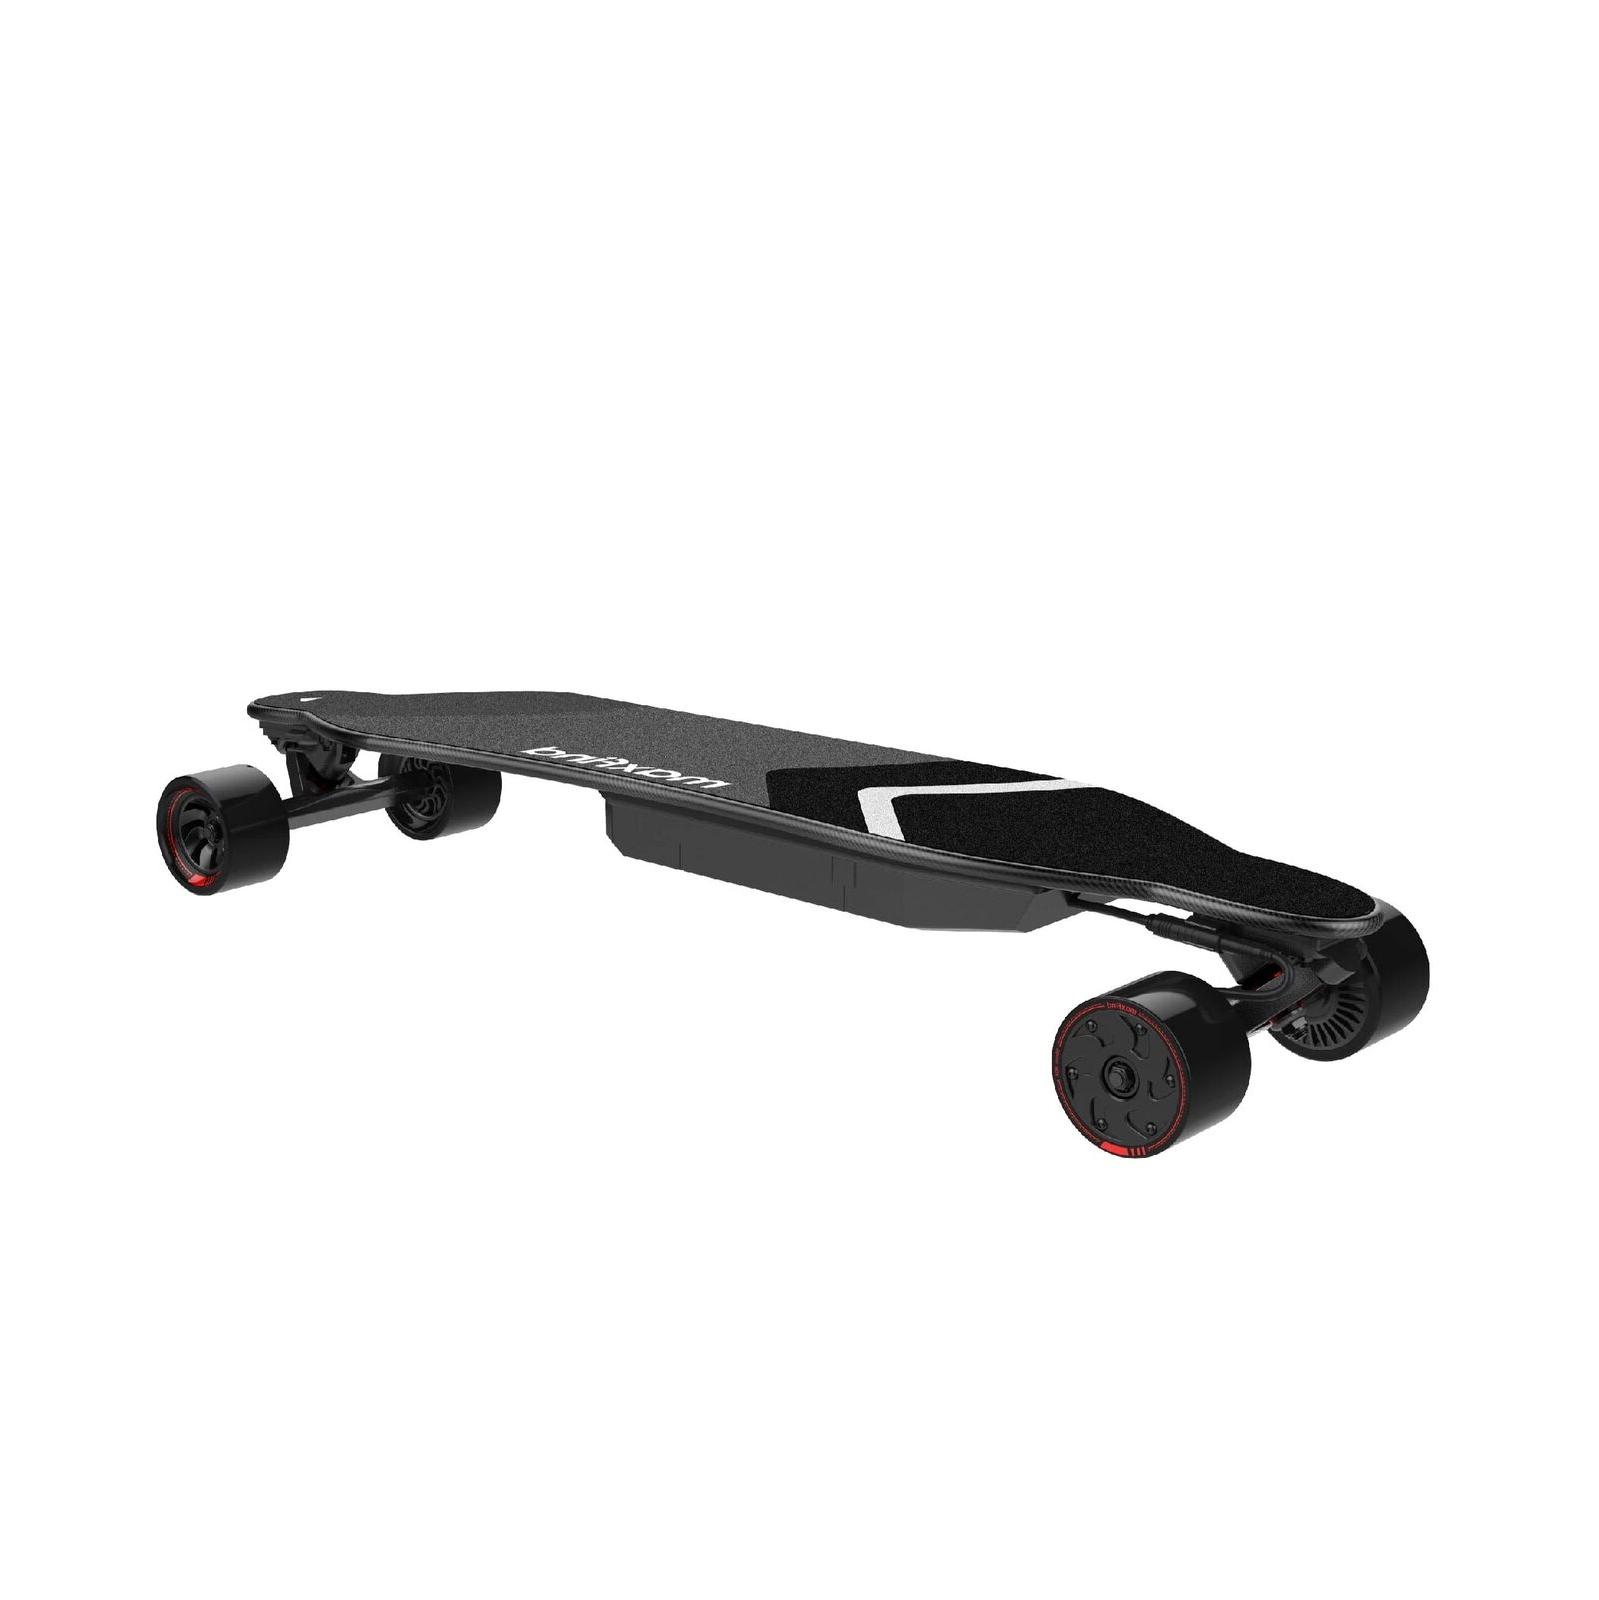 "38"" Skateboard Range 25 Mile Motor Bluetooth"